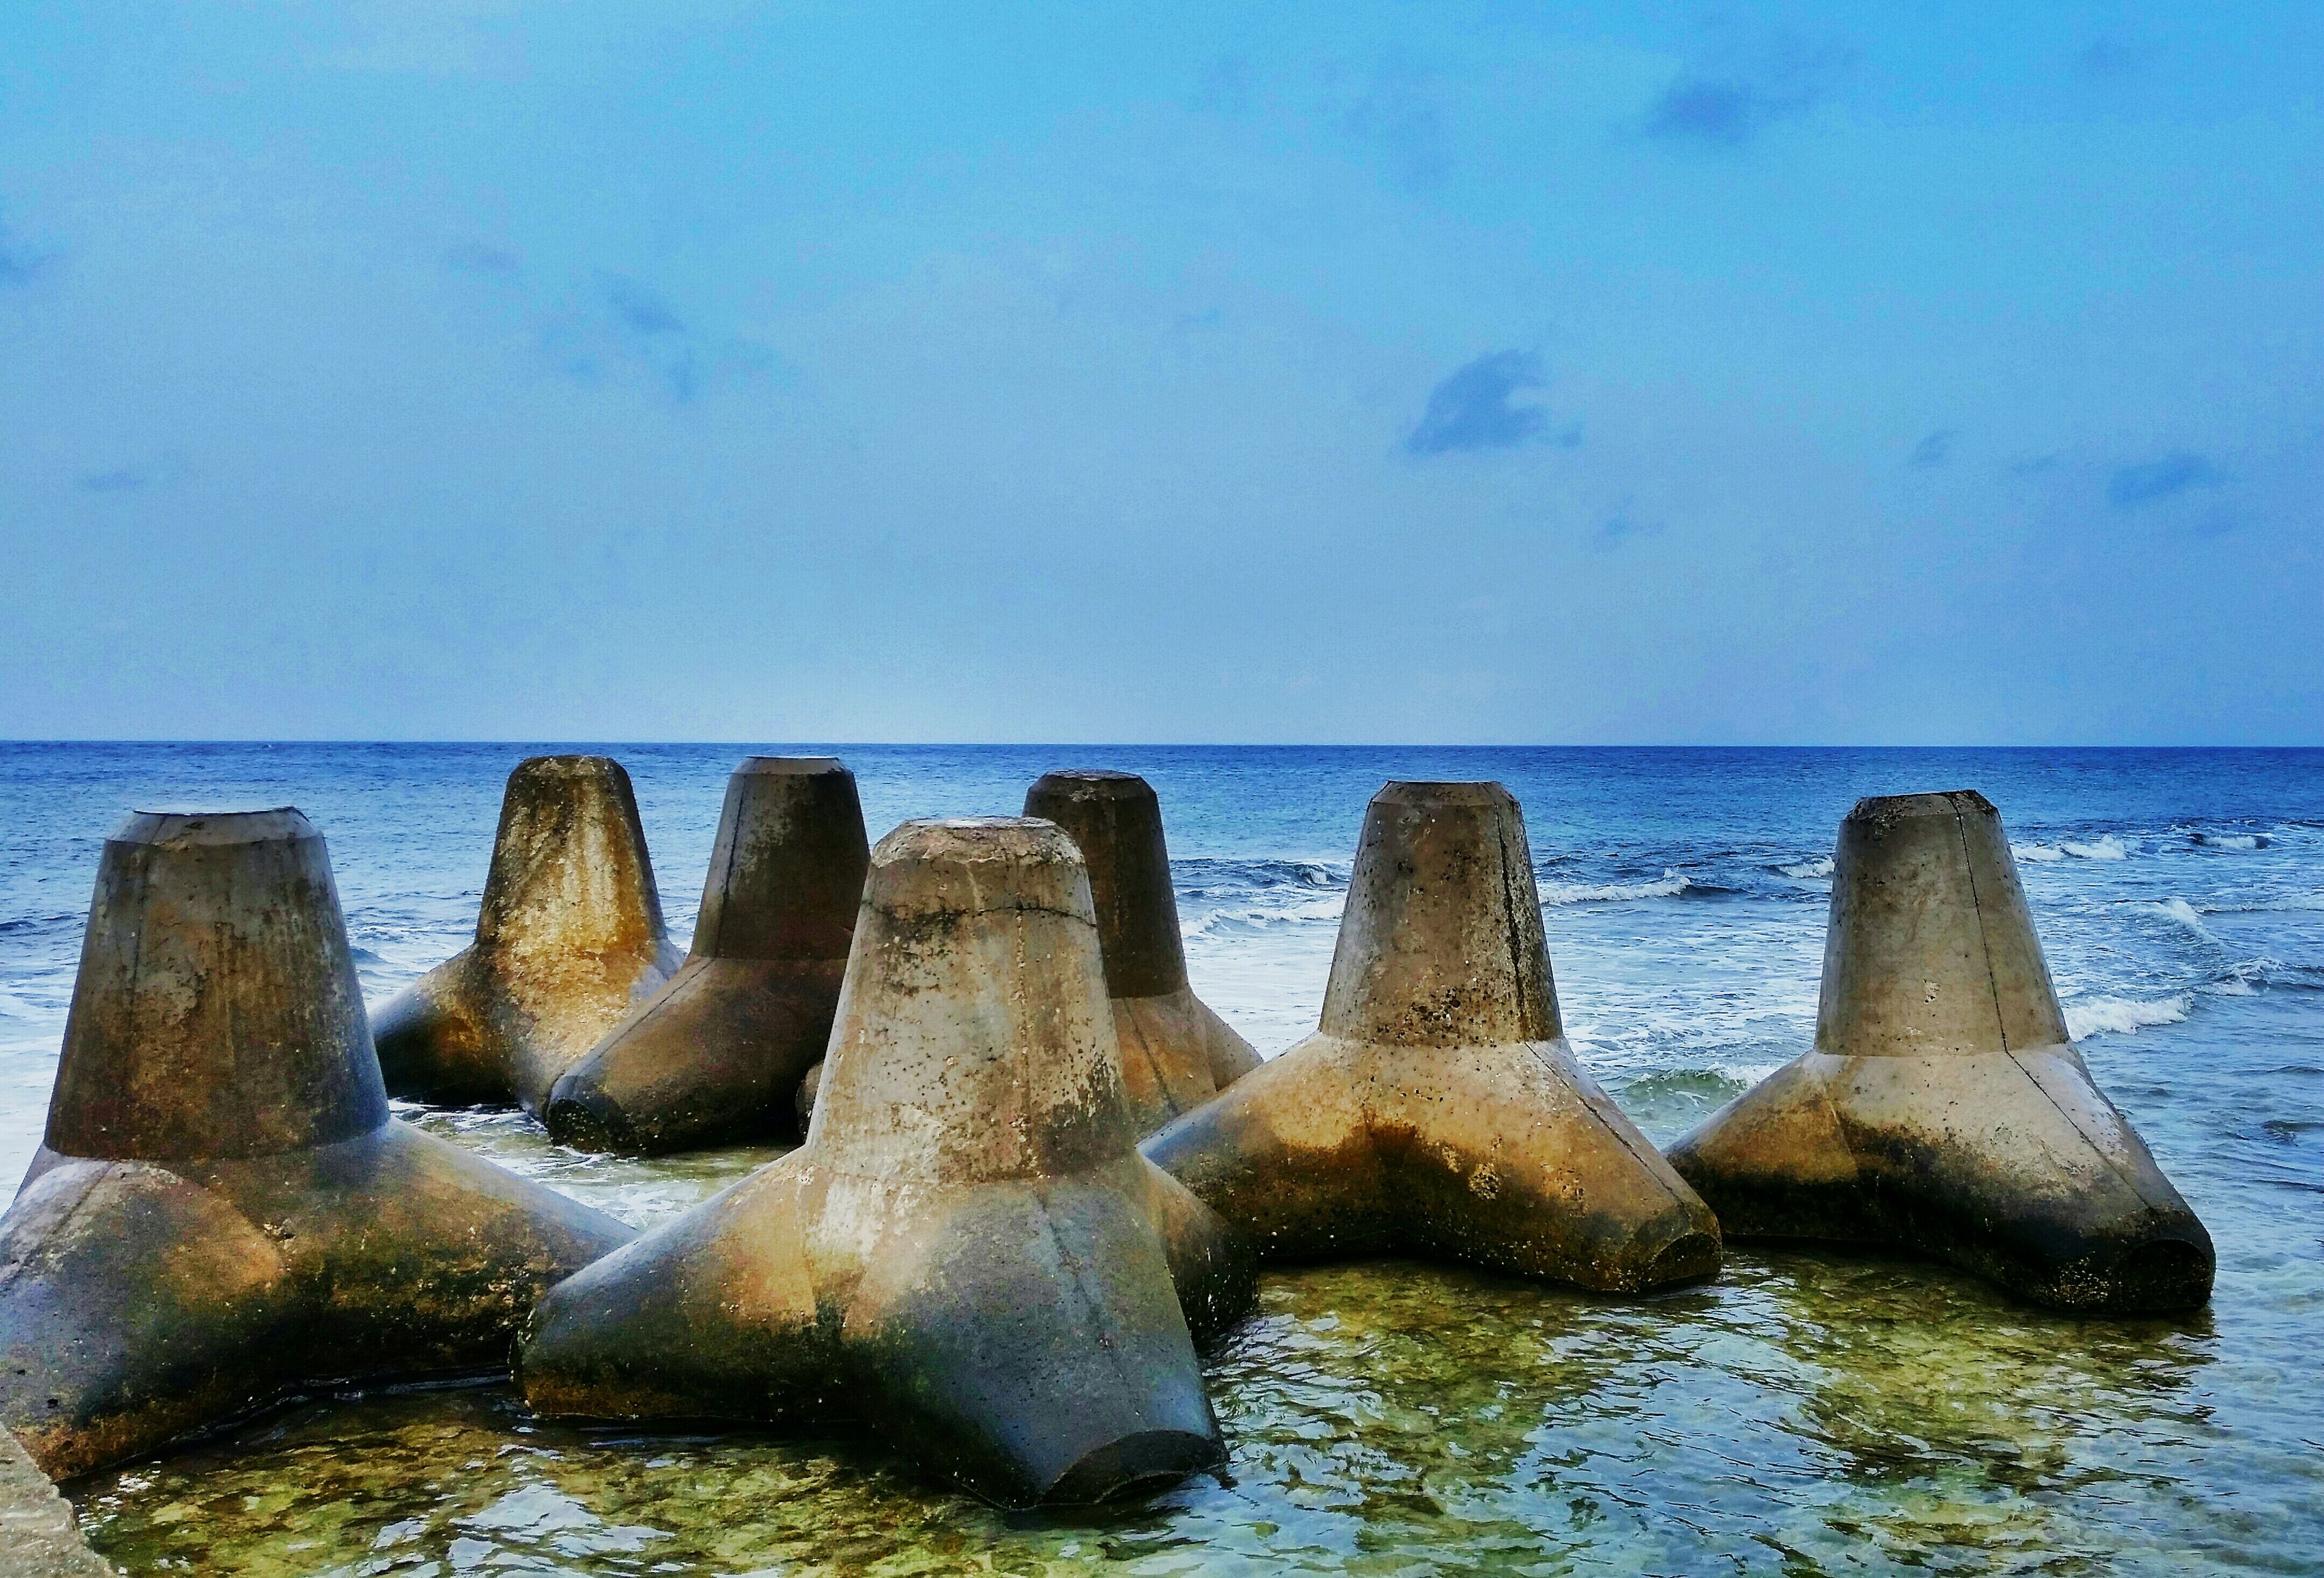 sea, horizon over water, water, scenics, tranquil scene, beauty in nature, tranquility, sky, rock - object, nature, beach, blue, idyllic, shore, rock formation, waterfront, outdoors, wave, remote, day